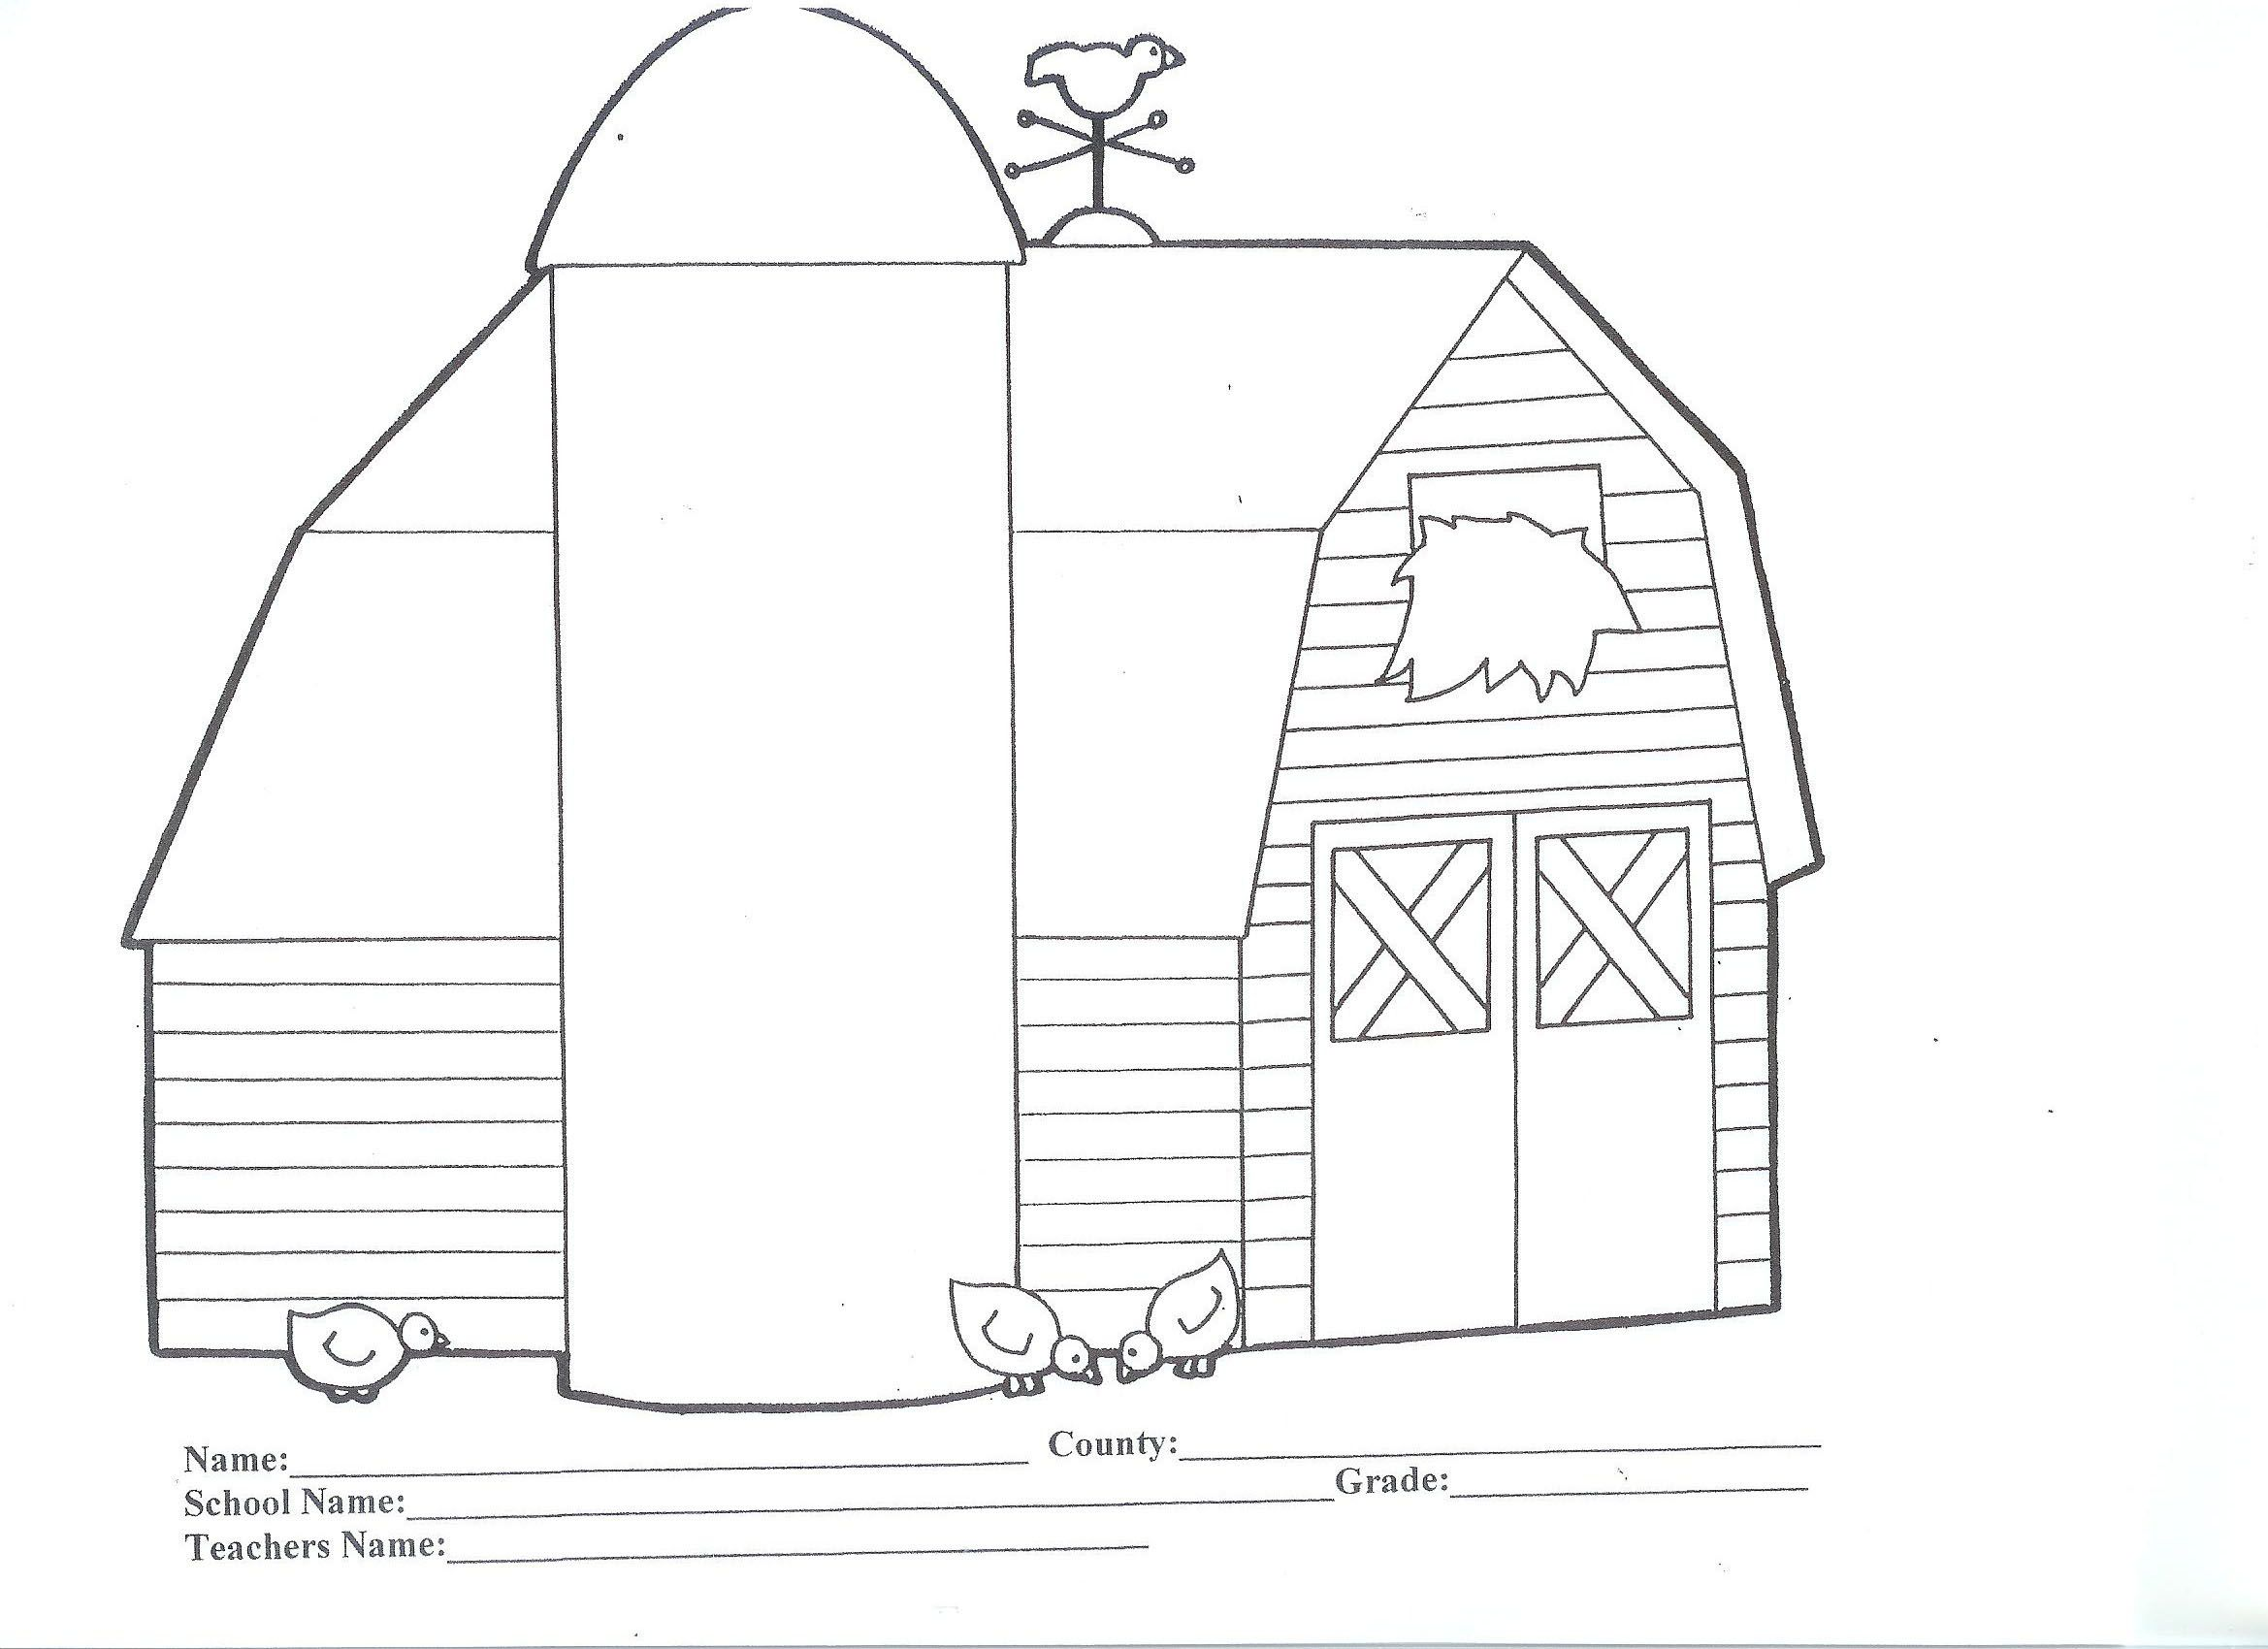 barn pictures to coloring pages - photo#20